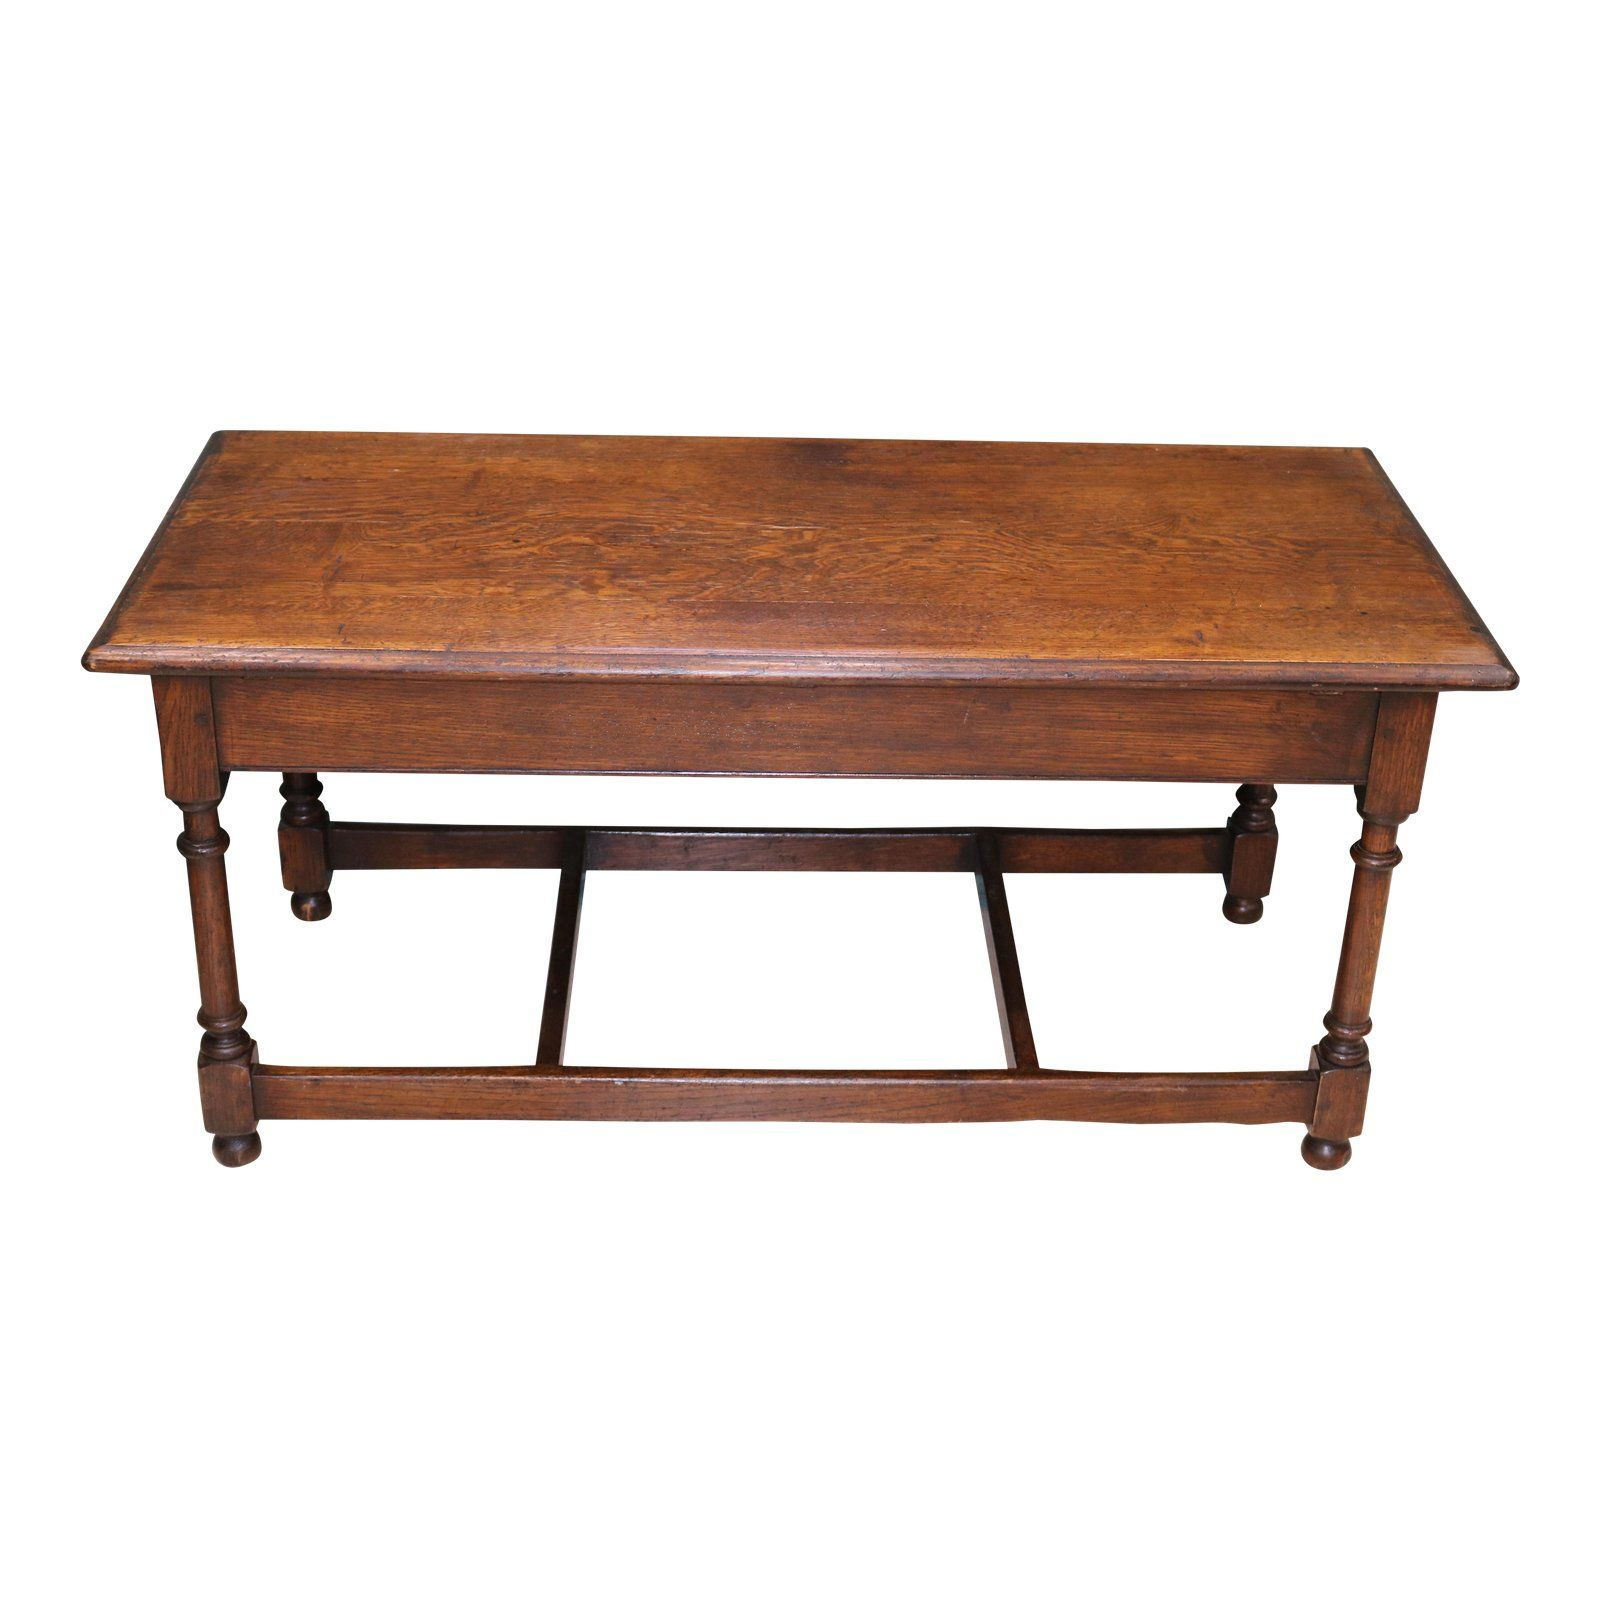 Antique English Oak Coffee Table For Sale Coffee Table Coffee Tables For Sale Coffee Table Prices [ 1600 x 1600 Pixel ]